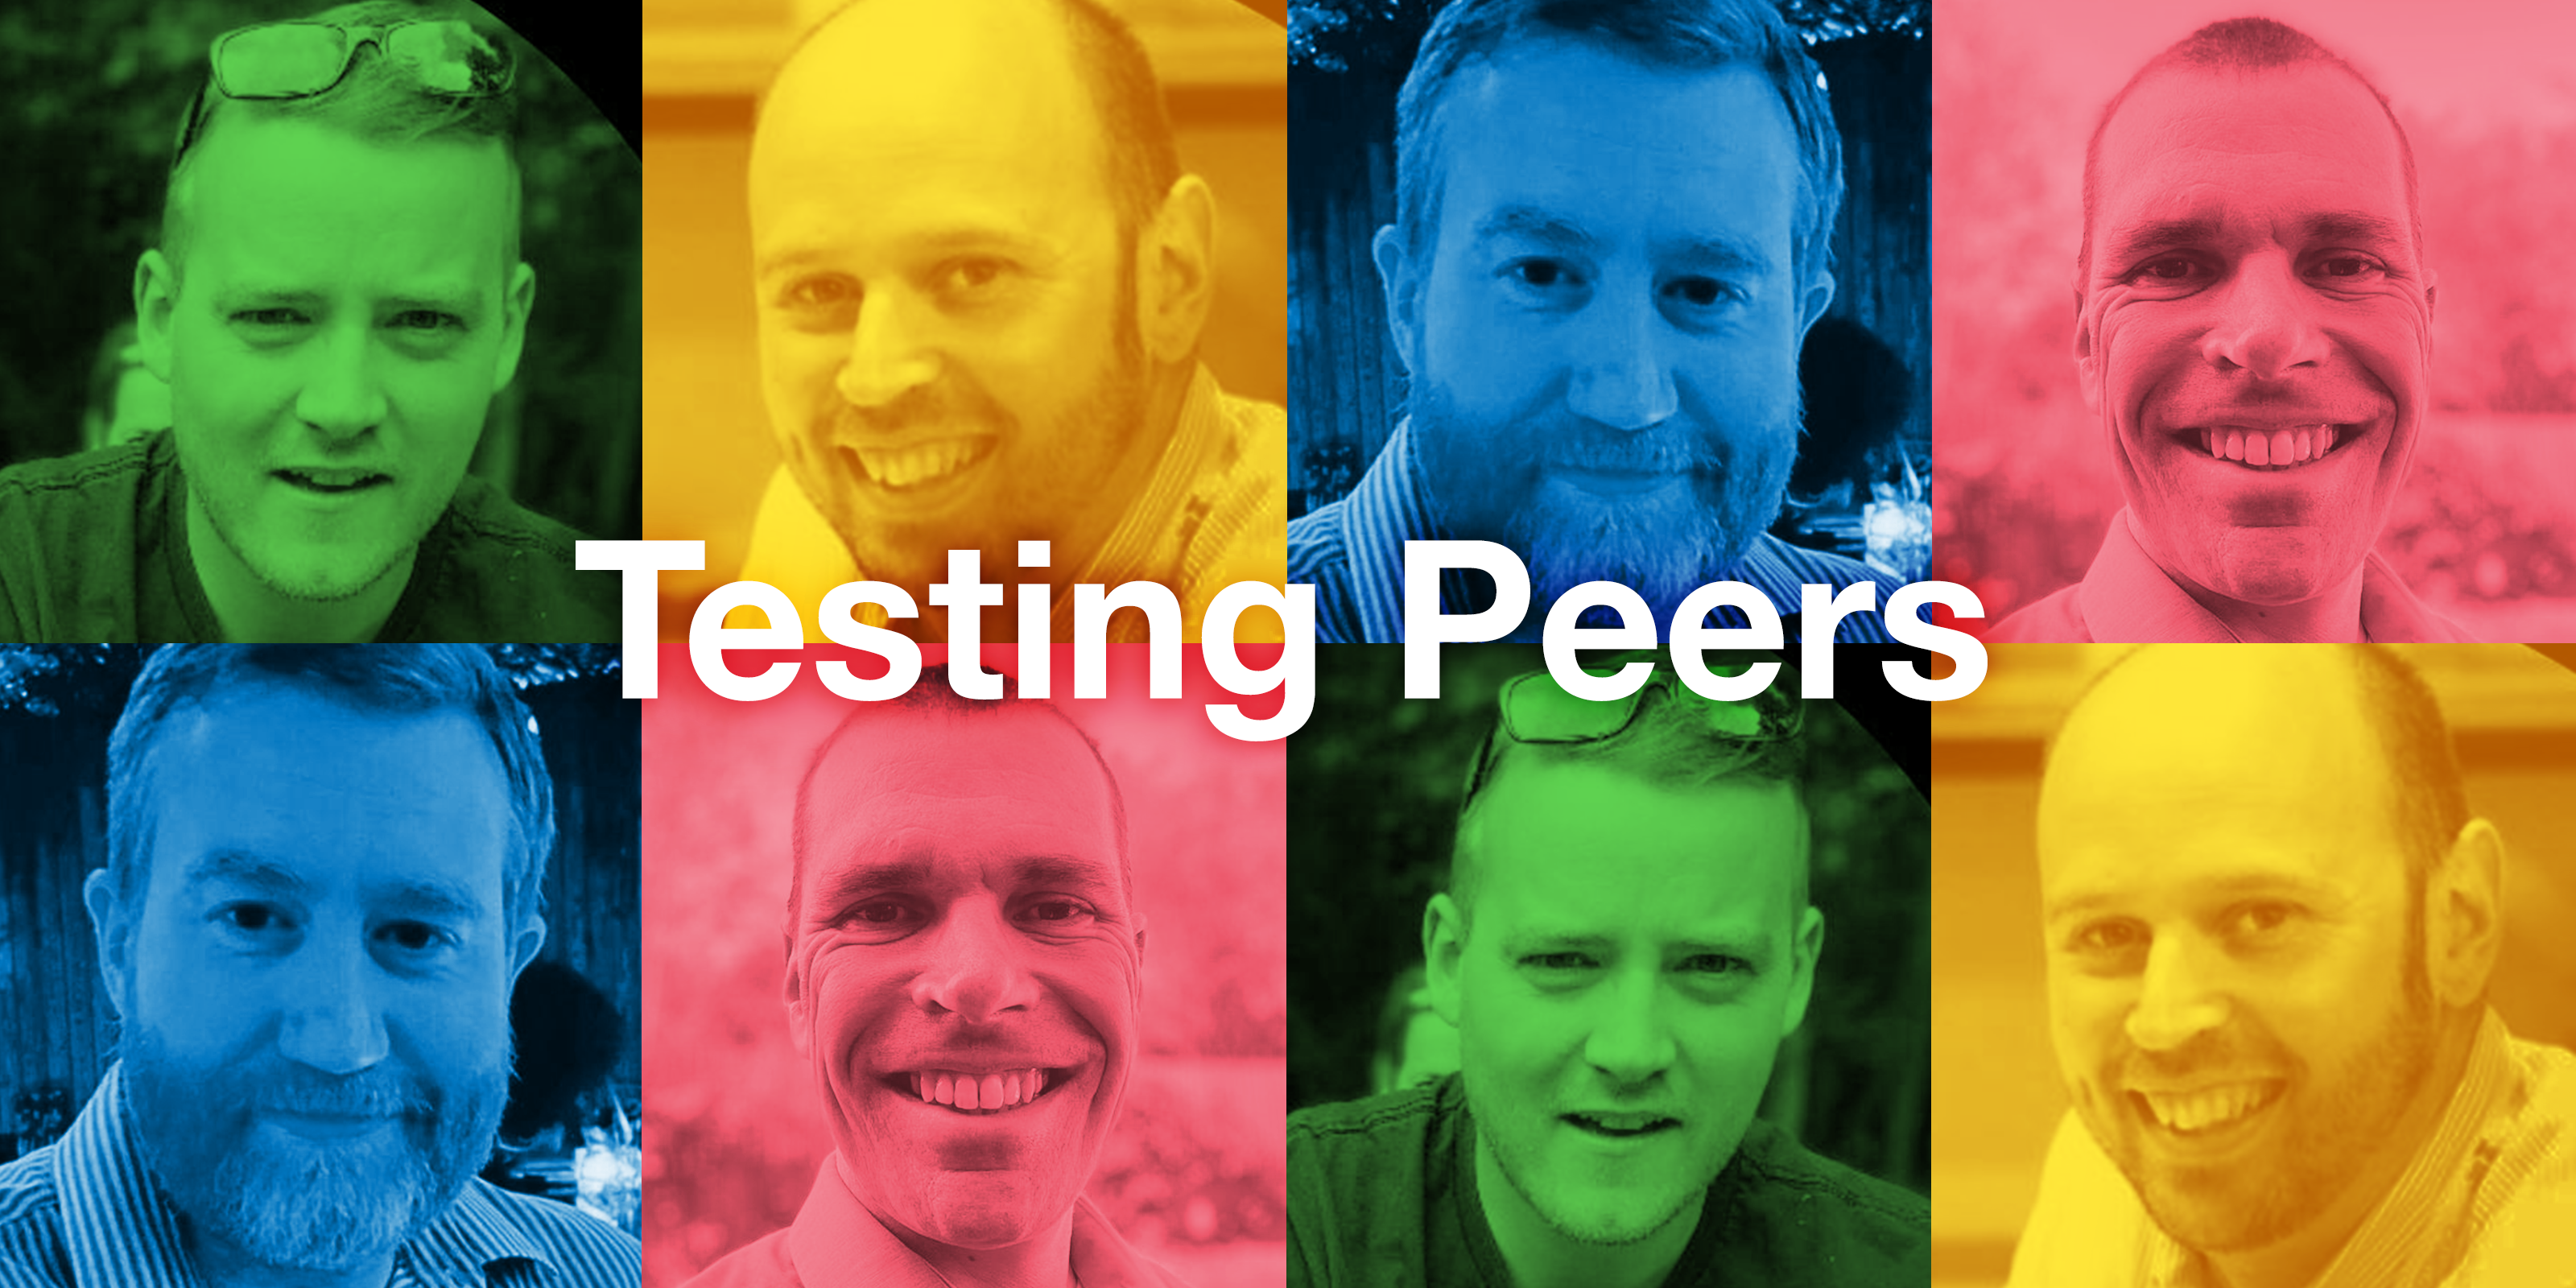 testing-peers-faces-title-3200x1600